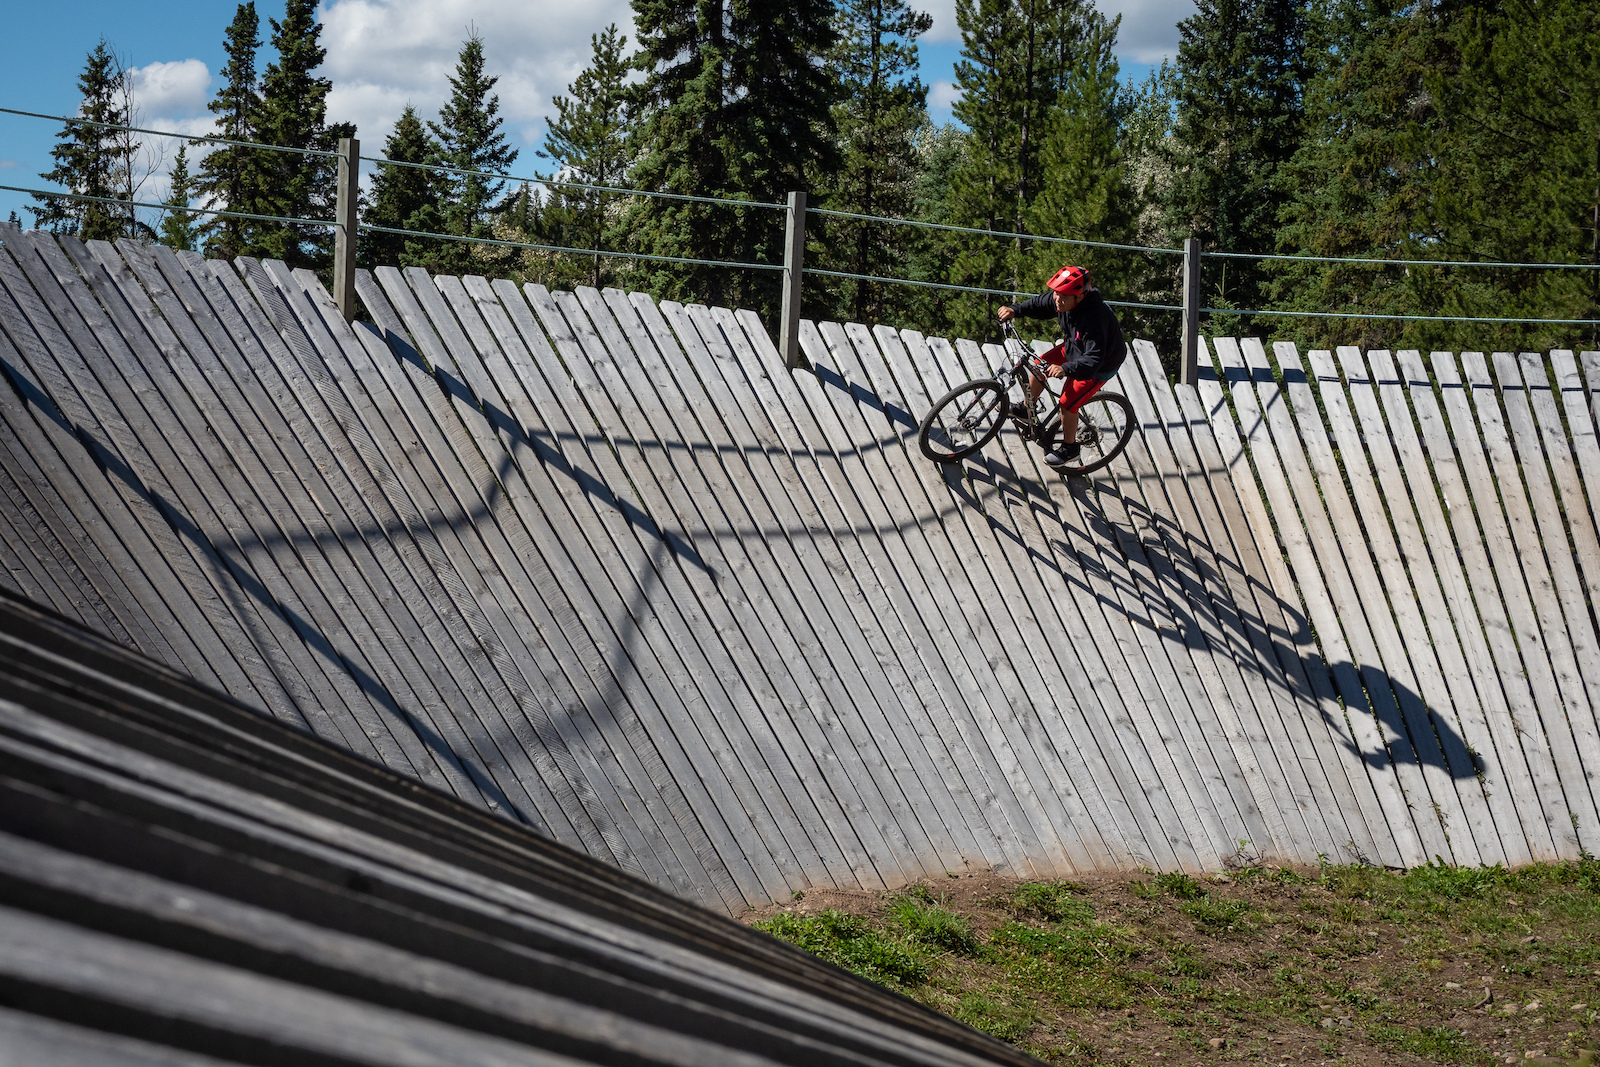 One of the most stoked members of the Spirit North program who provides First Nations youth with bikes helmets and coaching to encourage a connection to their territory through sport.